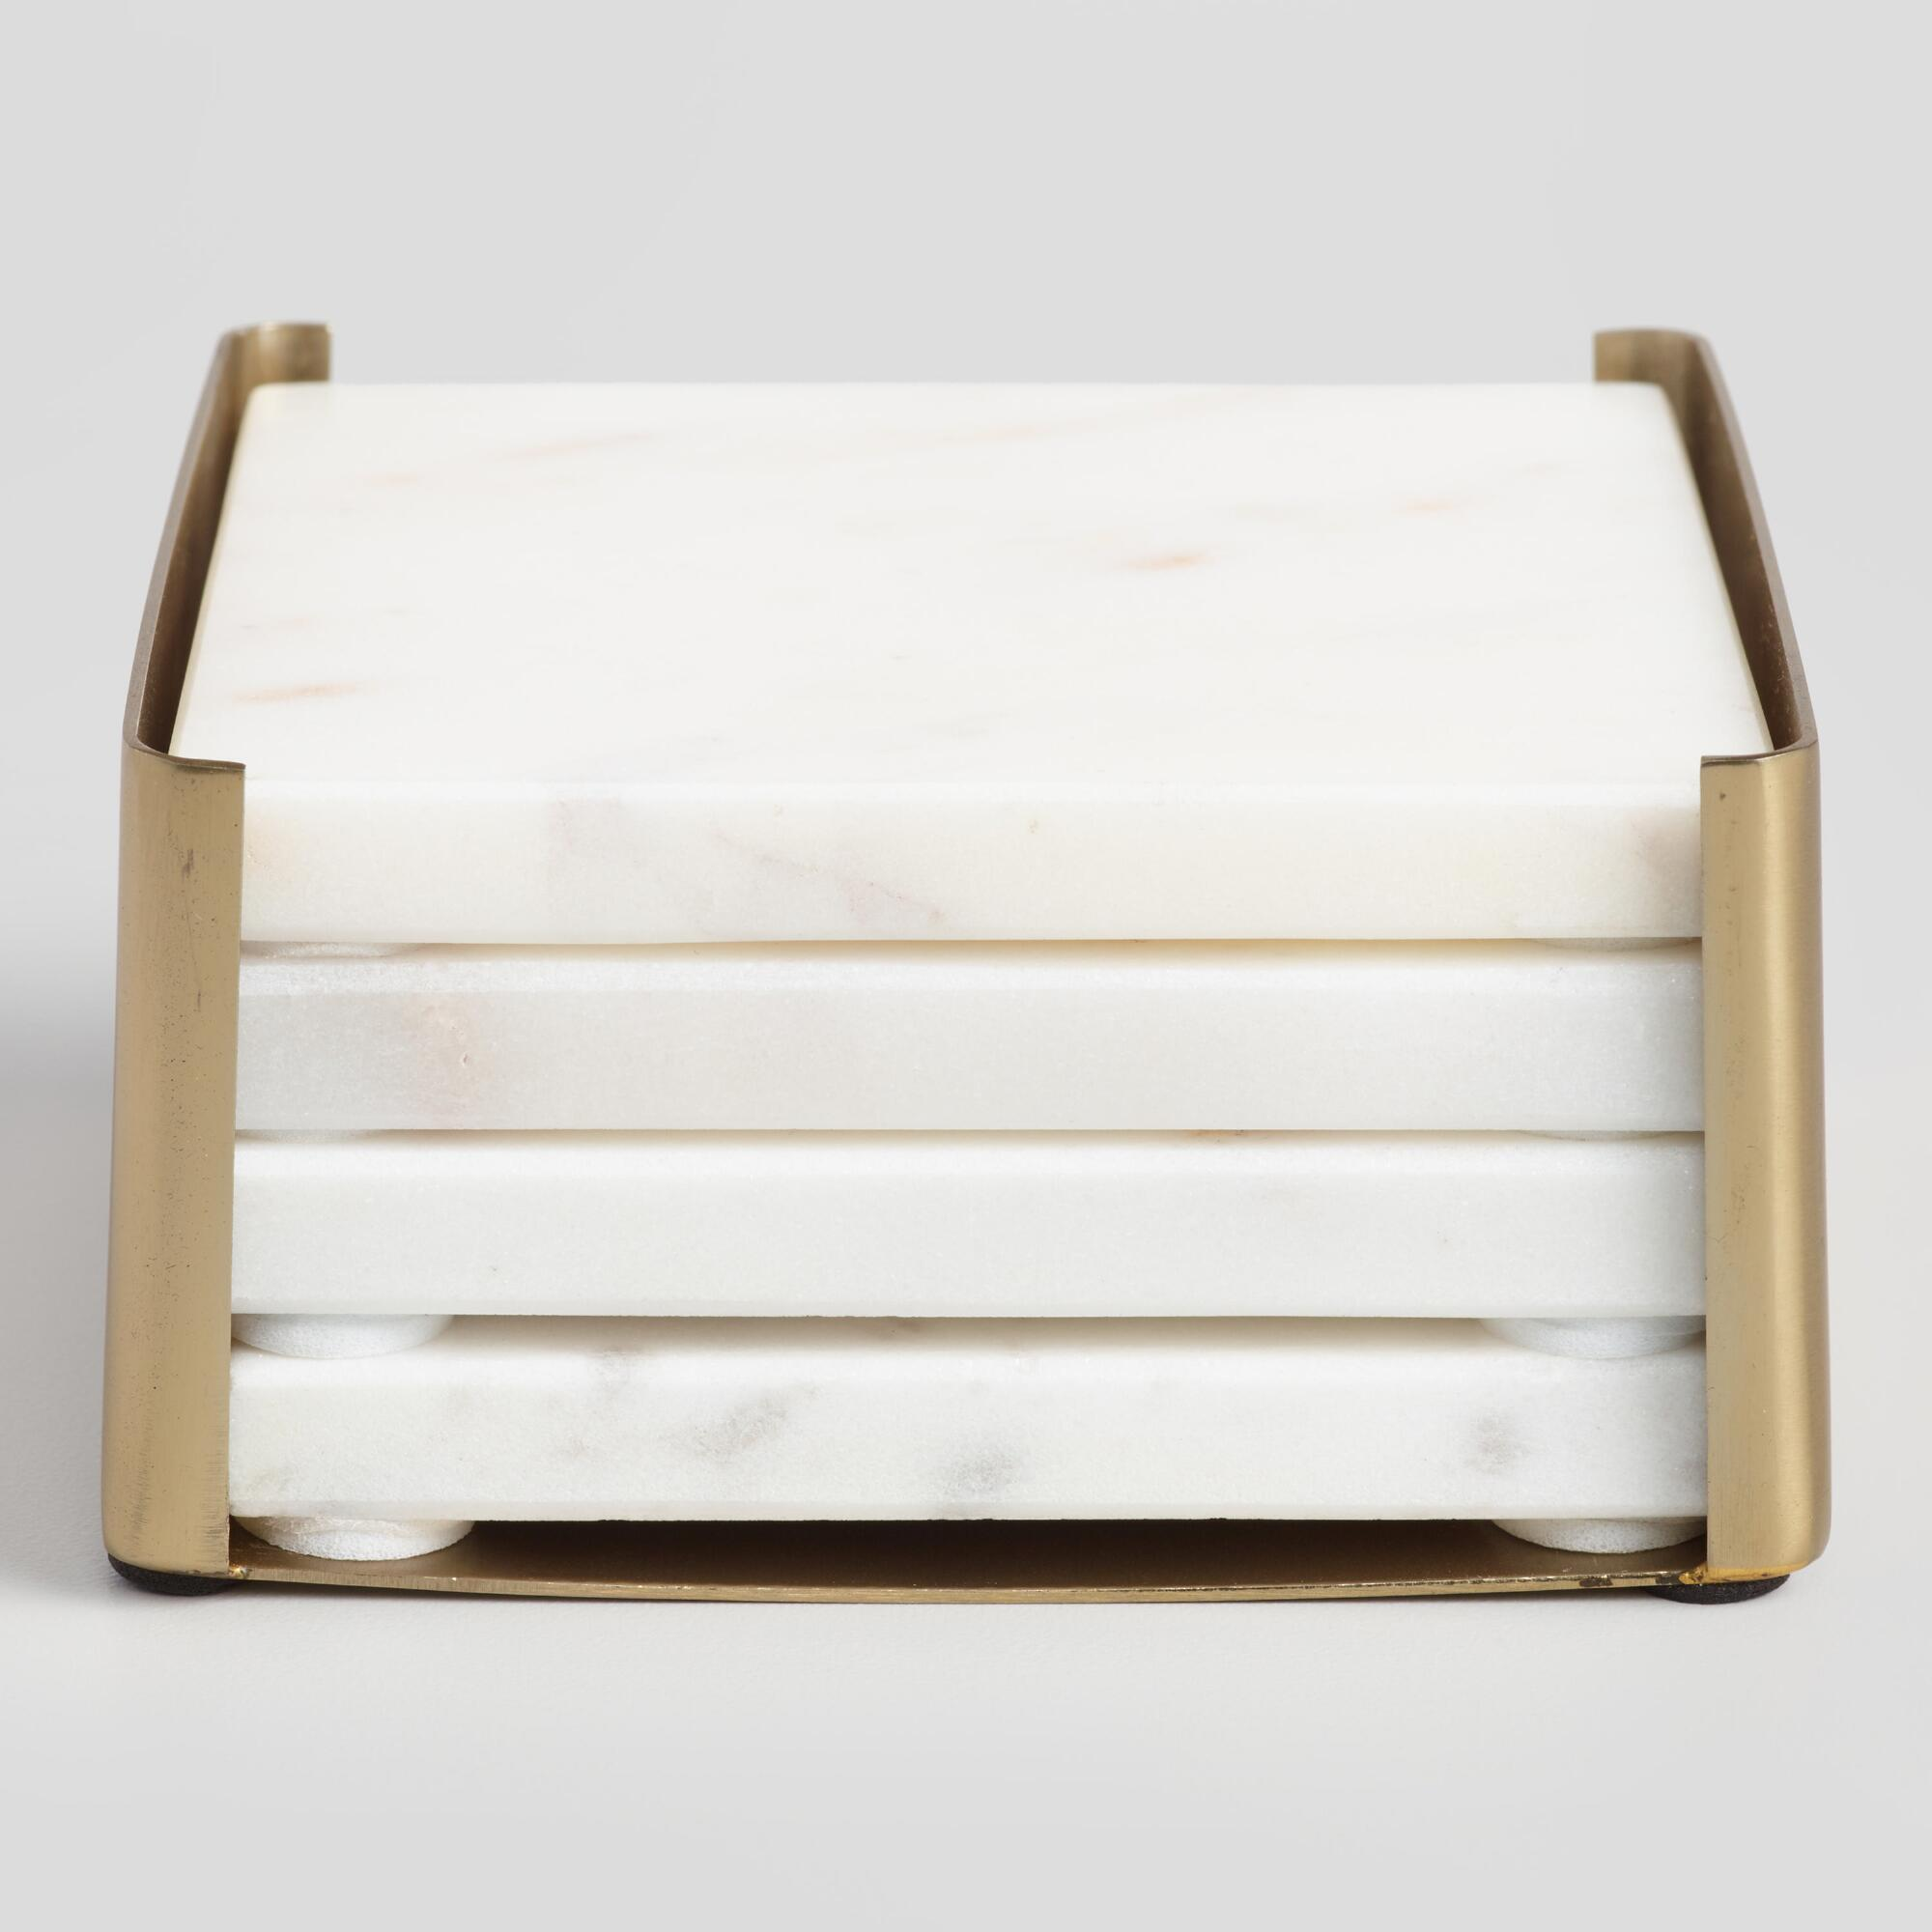 Marble Coasters in Gold Holder for under $25